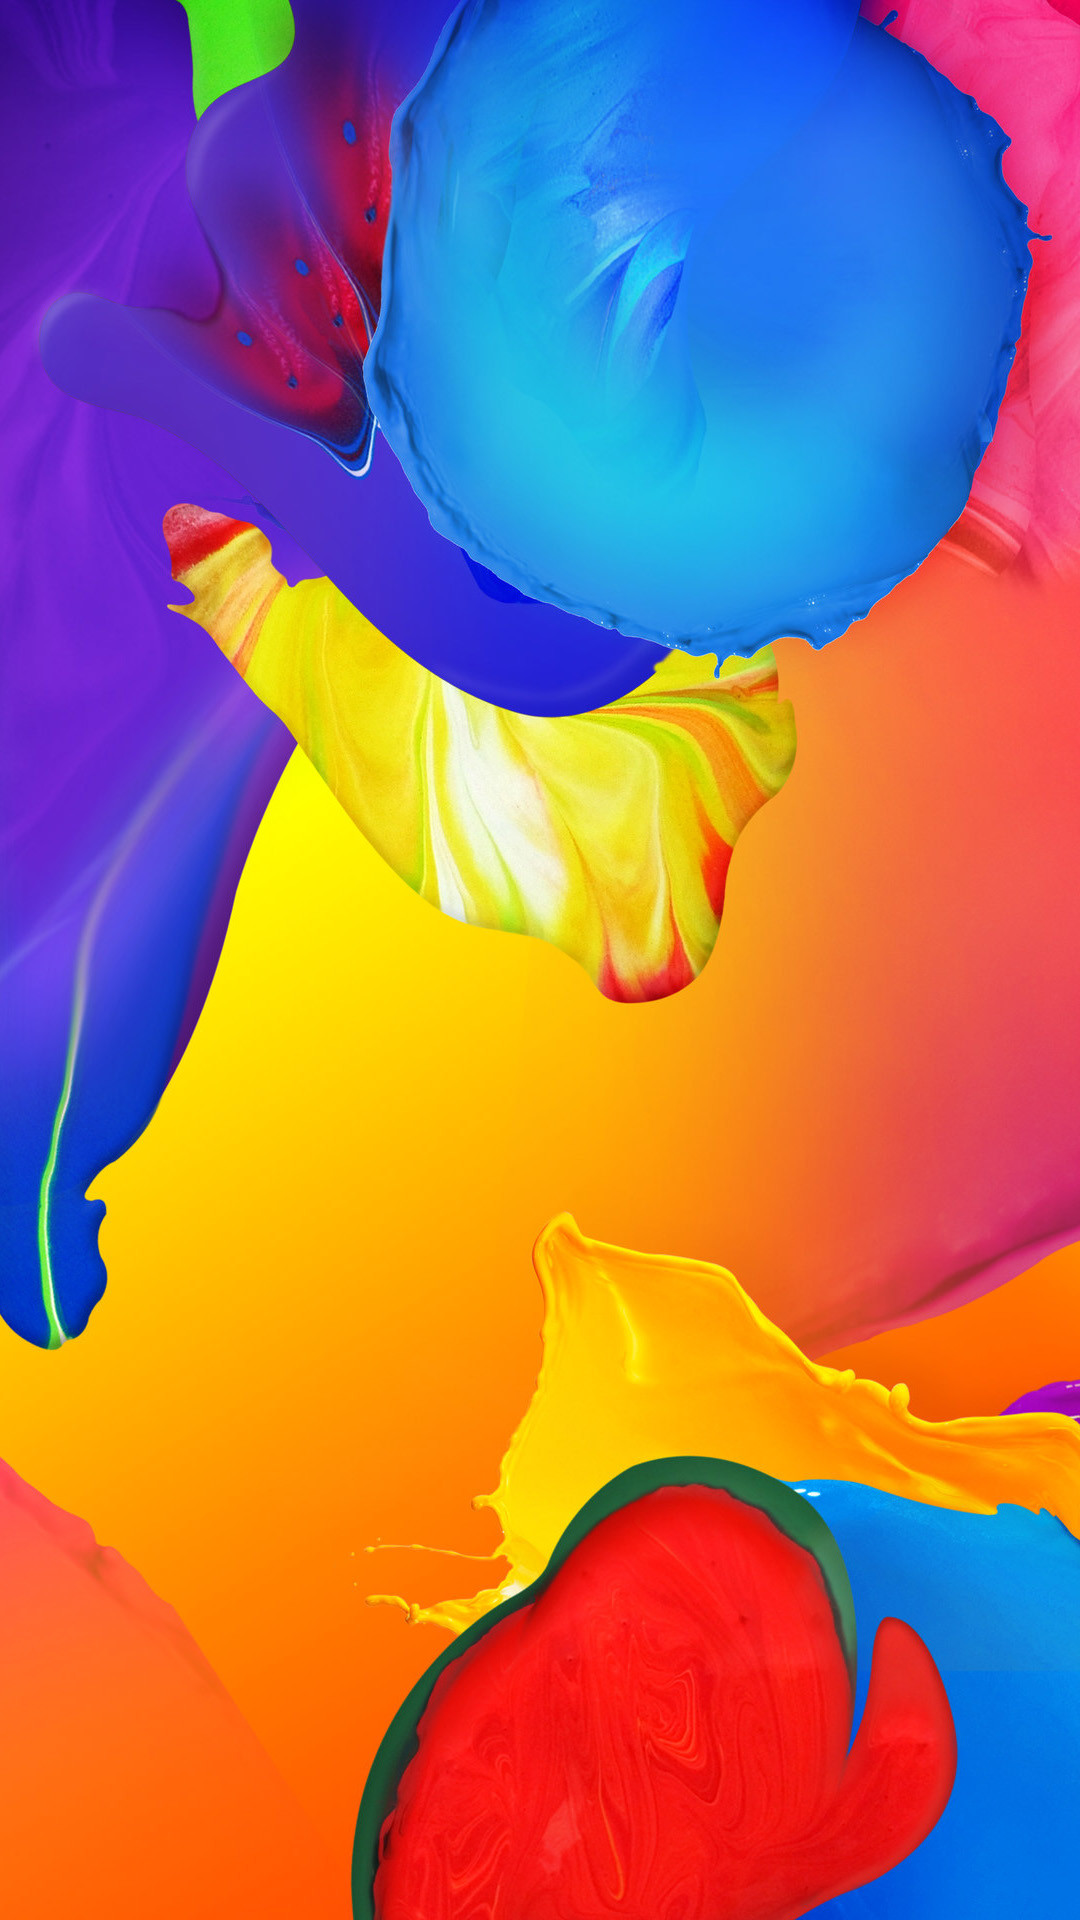 Colorful iPhone Wallpaper (84+ images)